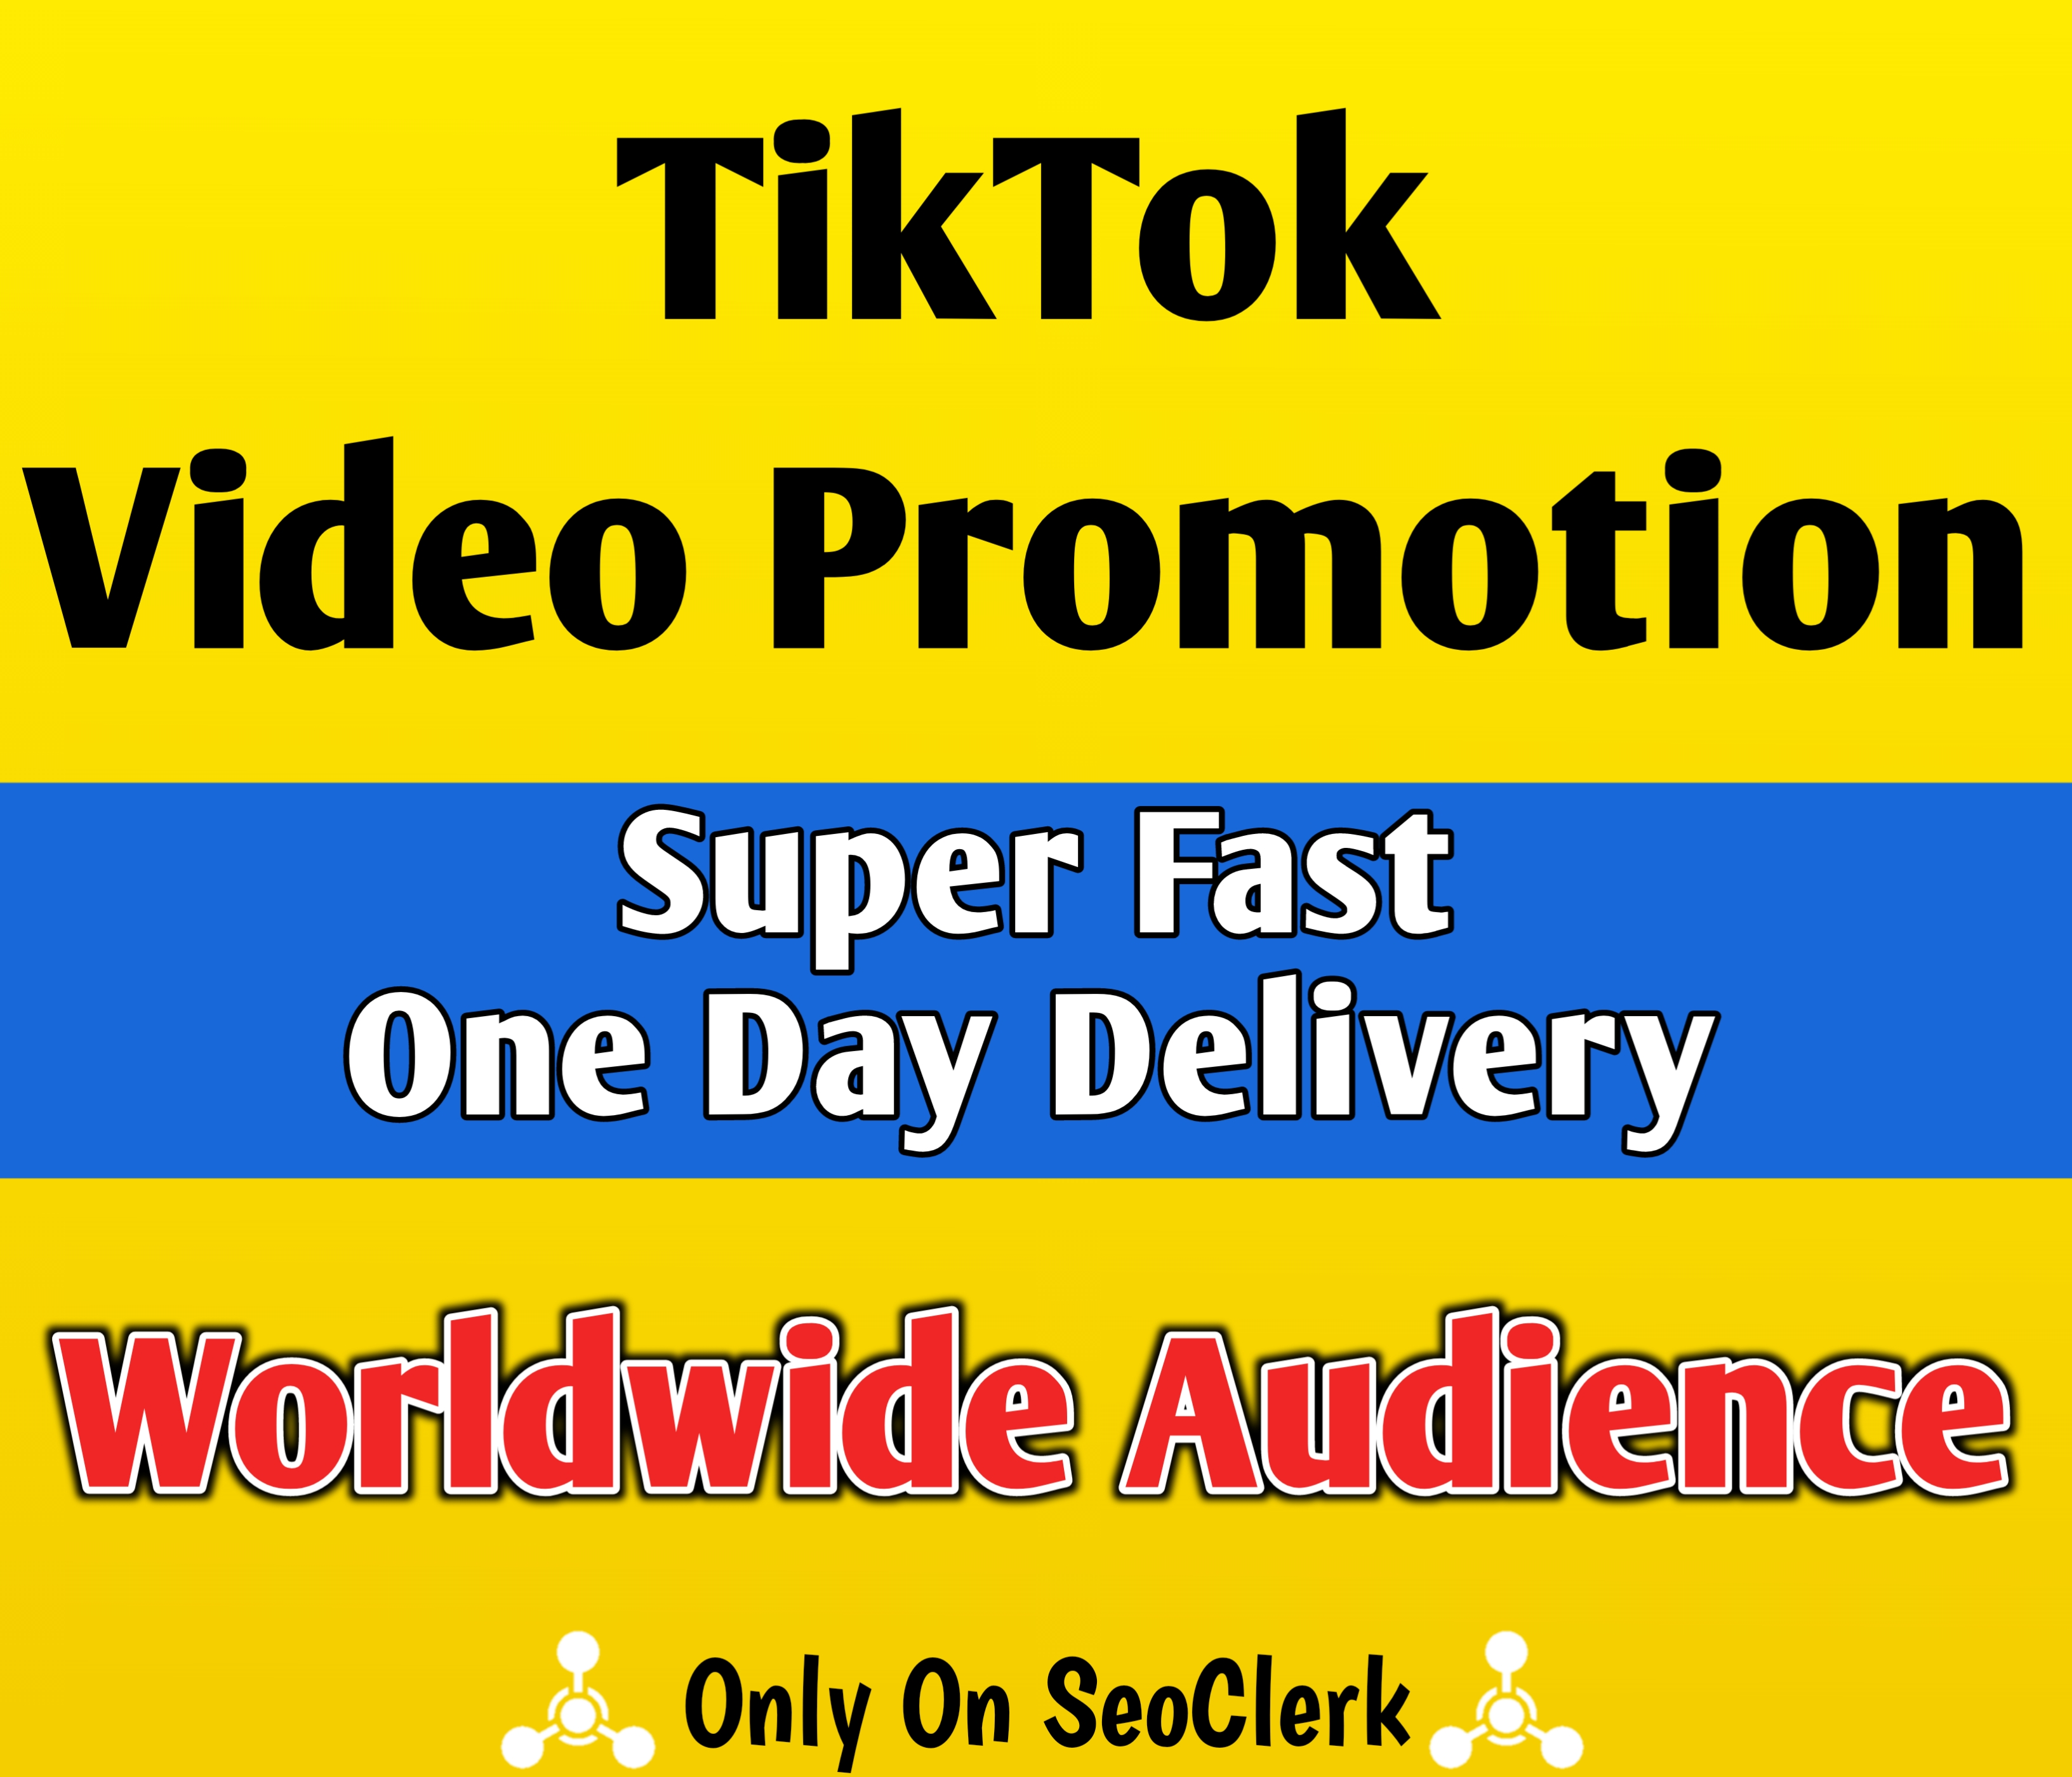 TikTok Video Promotion Instant and Fast Quality Audience